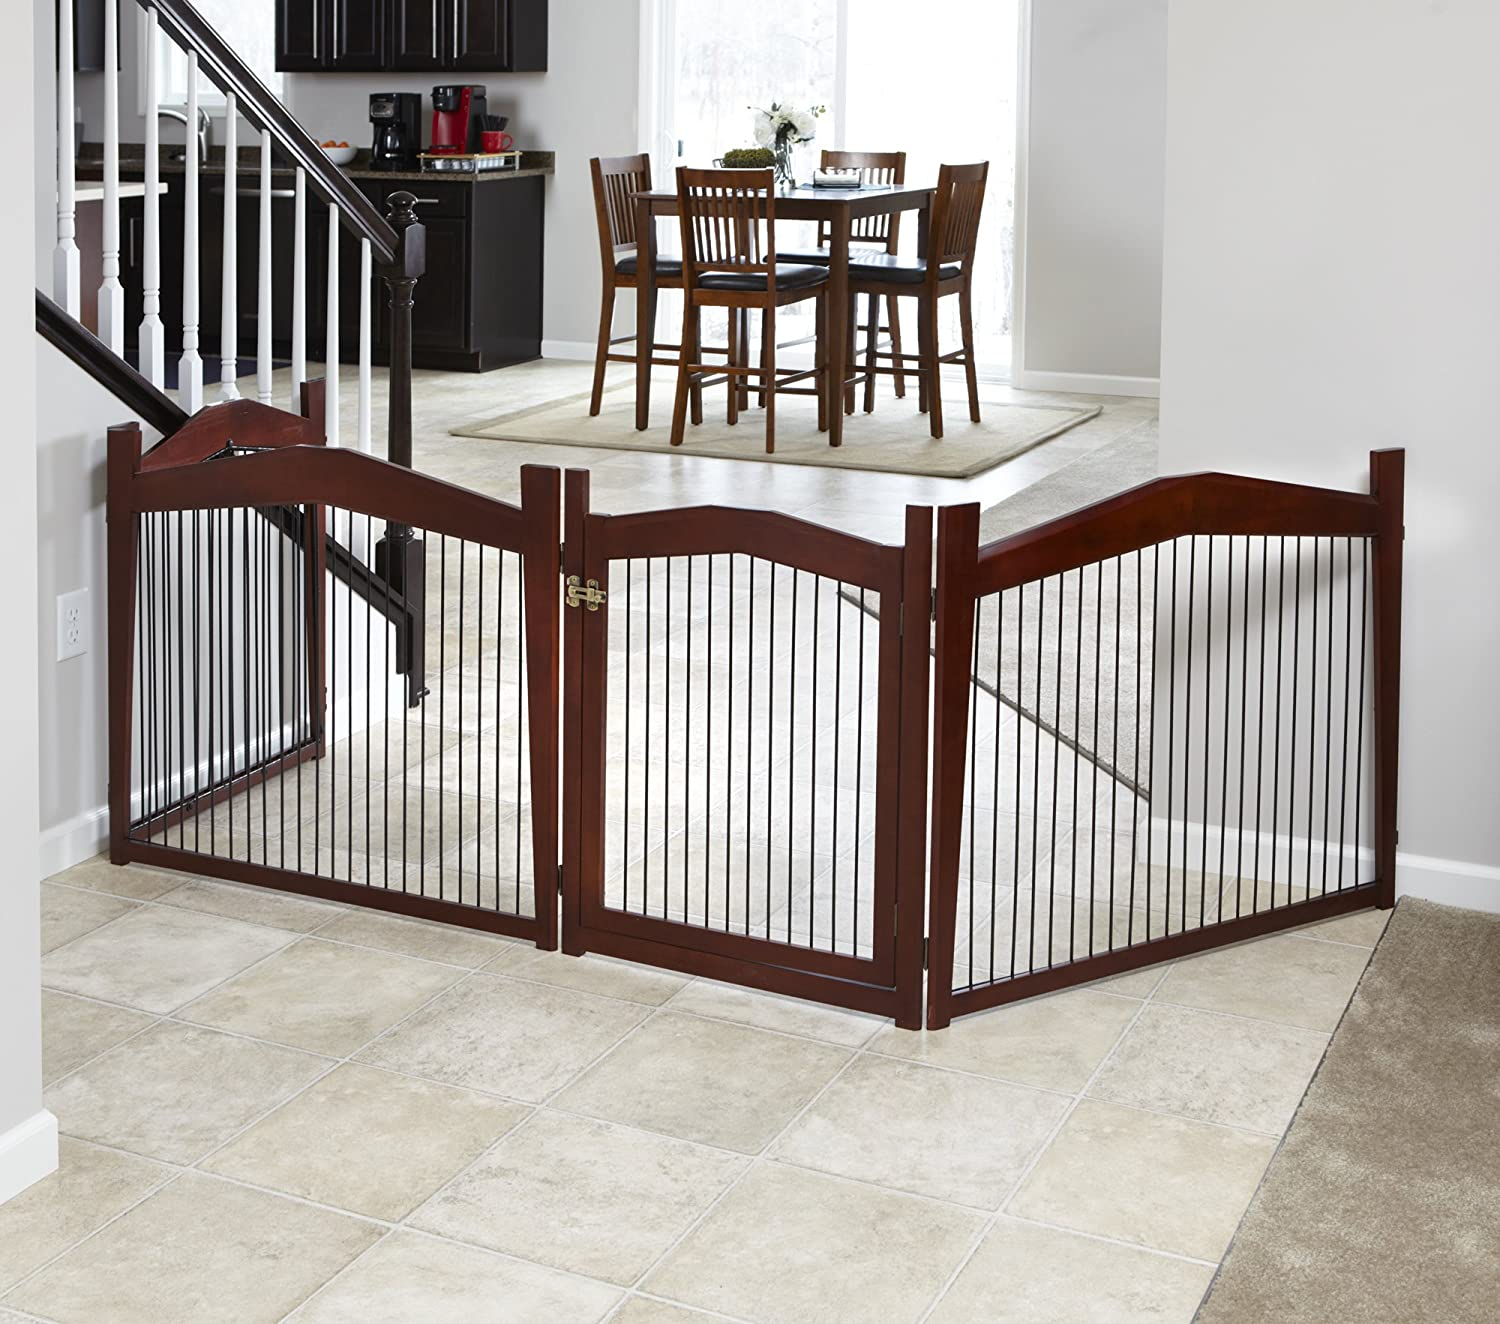 dog kennel double interesting furniture grass outstanding the plans wrangle divider crate cupboard